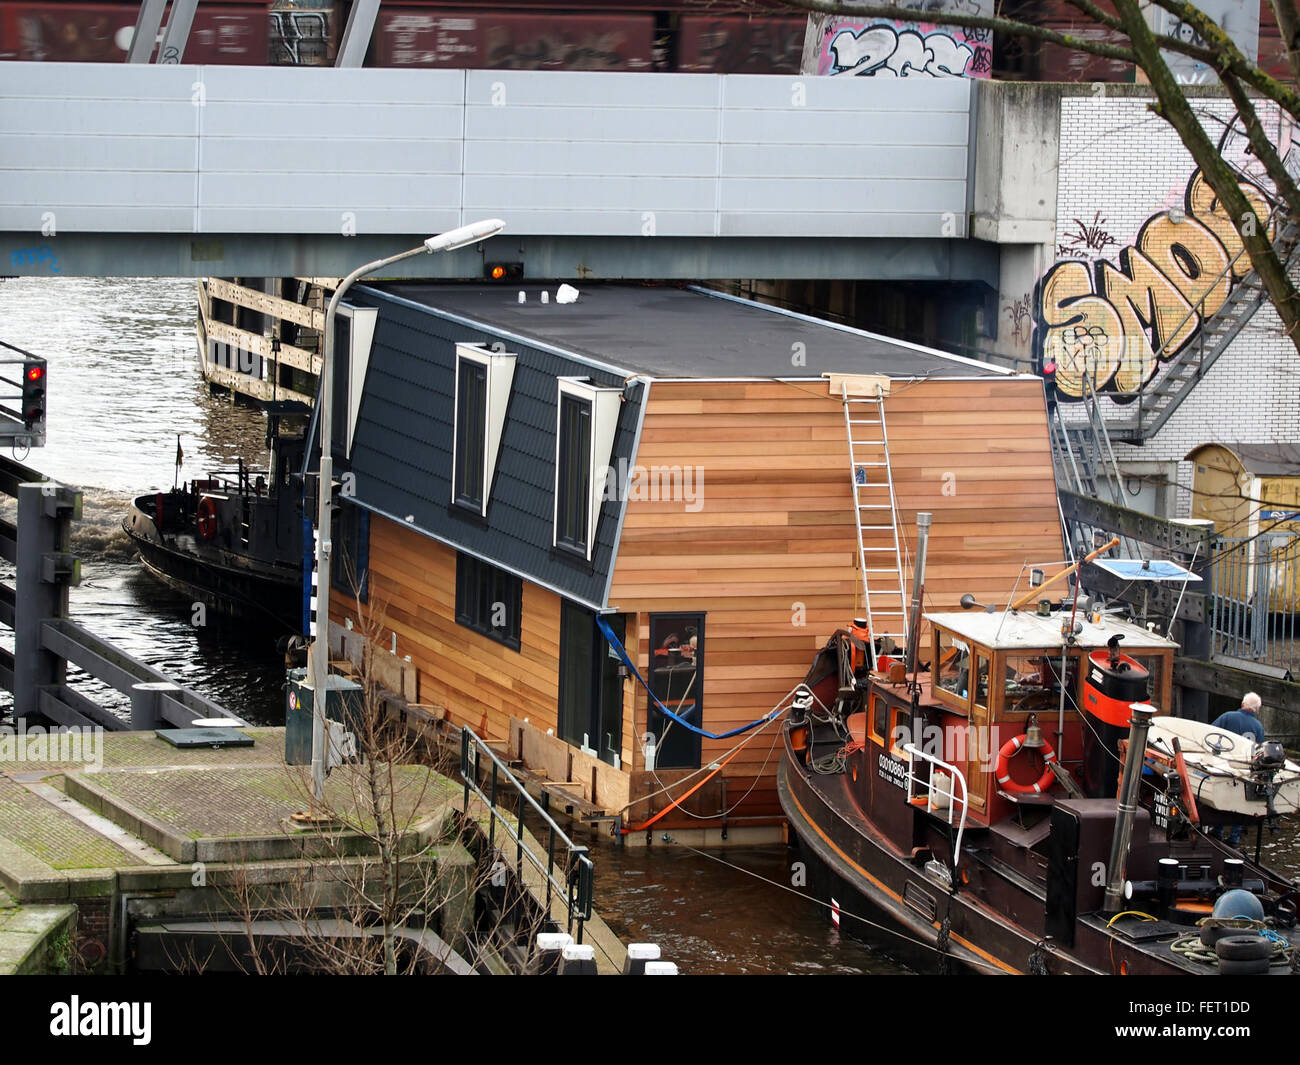 Housboat moved by Wiljo ENI 03010860 pic2 - Stock Image